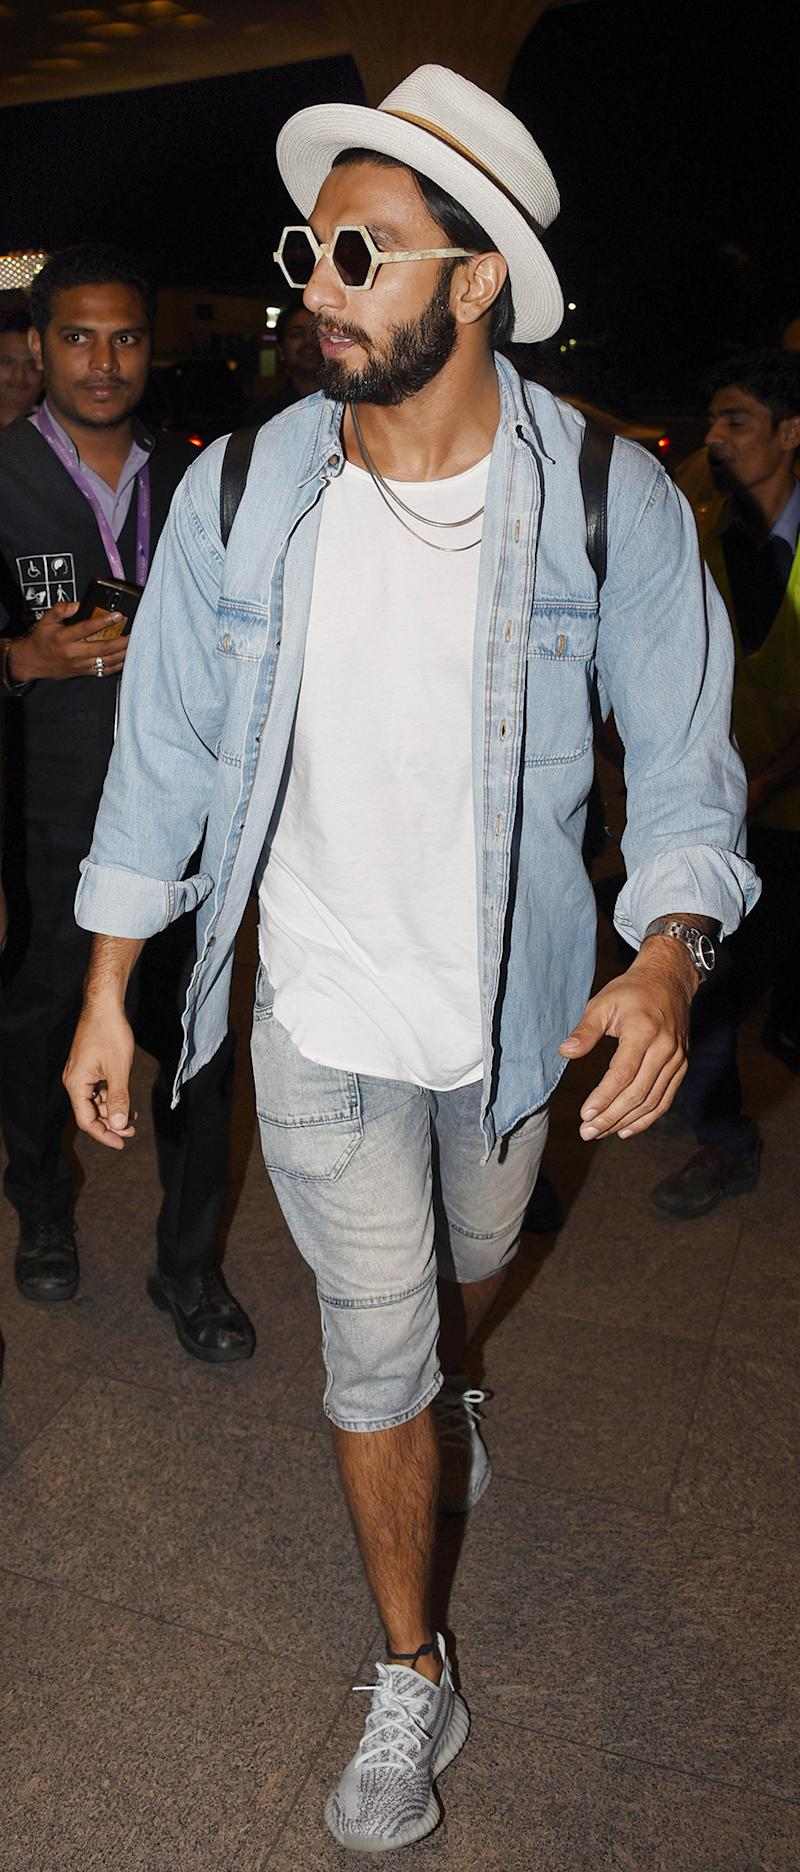 Ranveer Singh snapped at Mumbai airport while leaving for Sri Lanka. (Image: Yogen Shah)